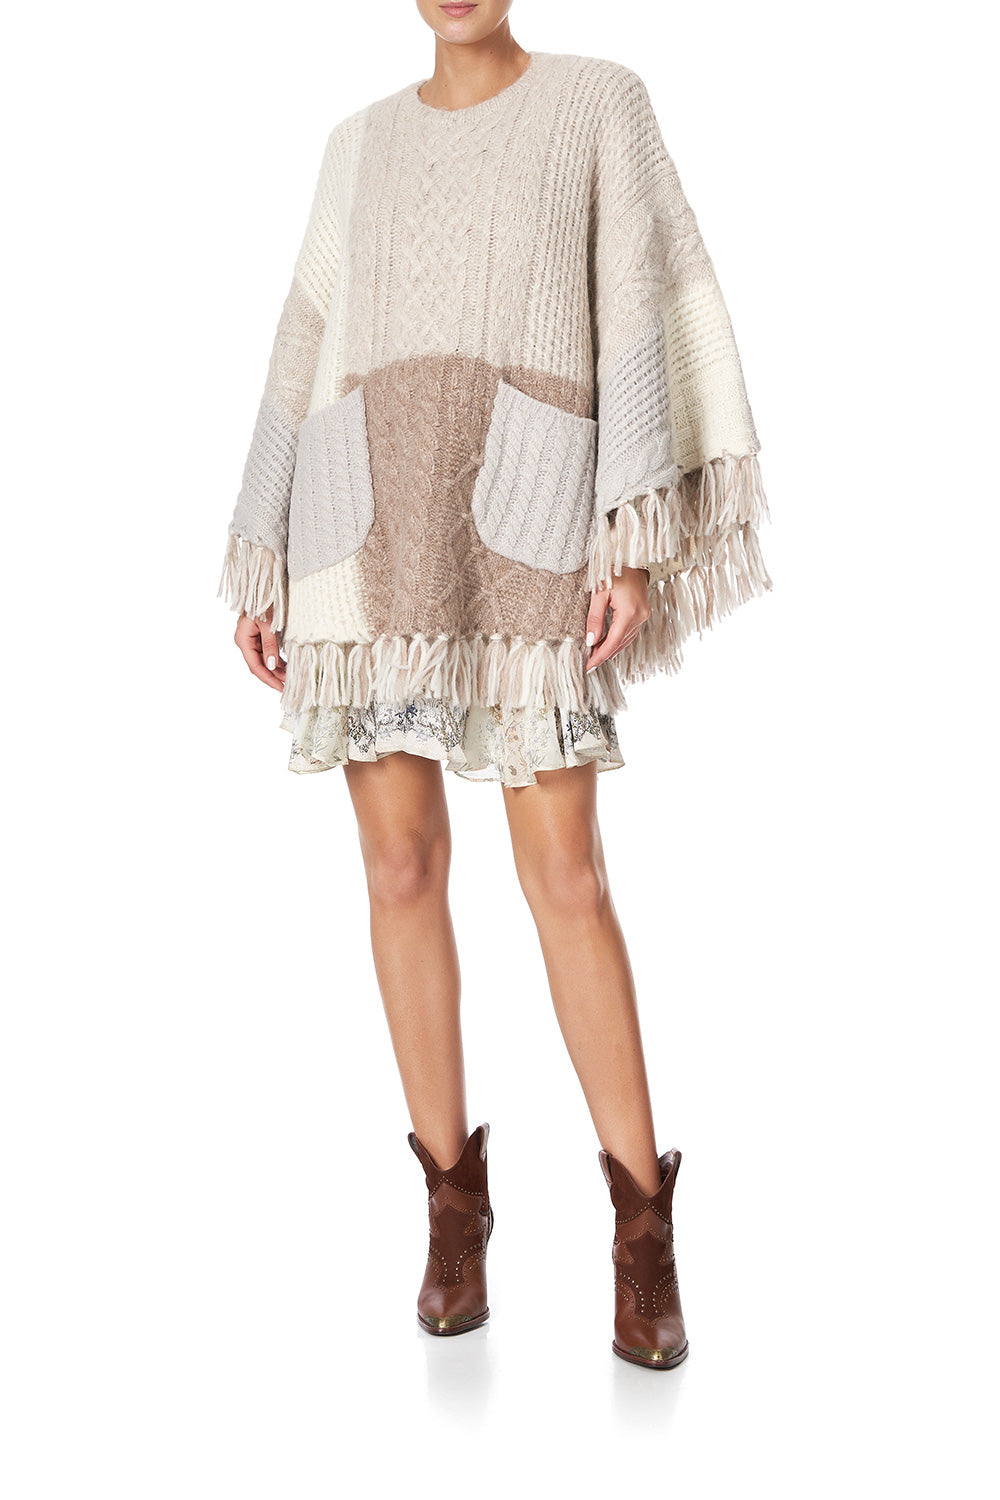 ROUND NECK PONCHO WITH POCKETS COUNTRY DIARIES